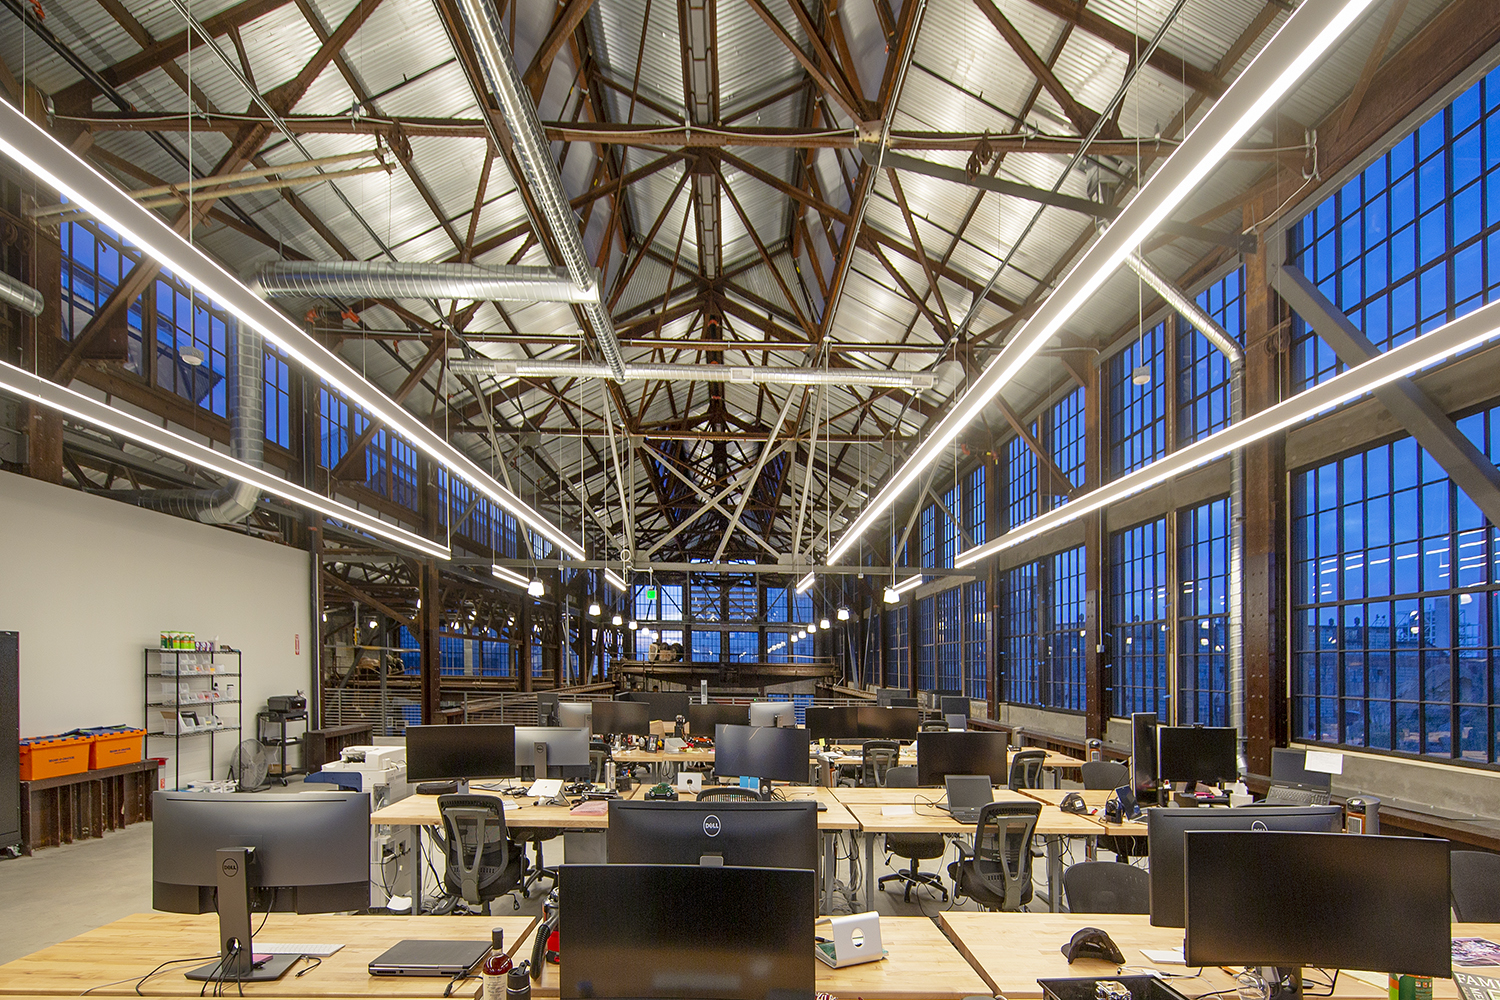 06_Projects_Adaptive Reuse of Historic Pier 70.jpg